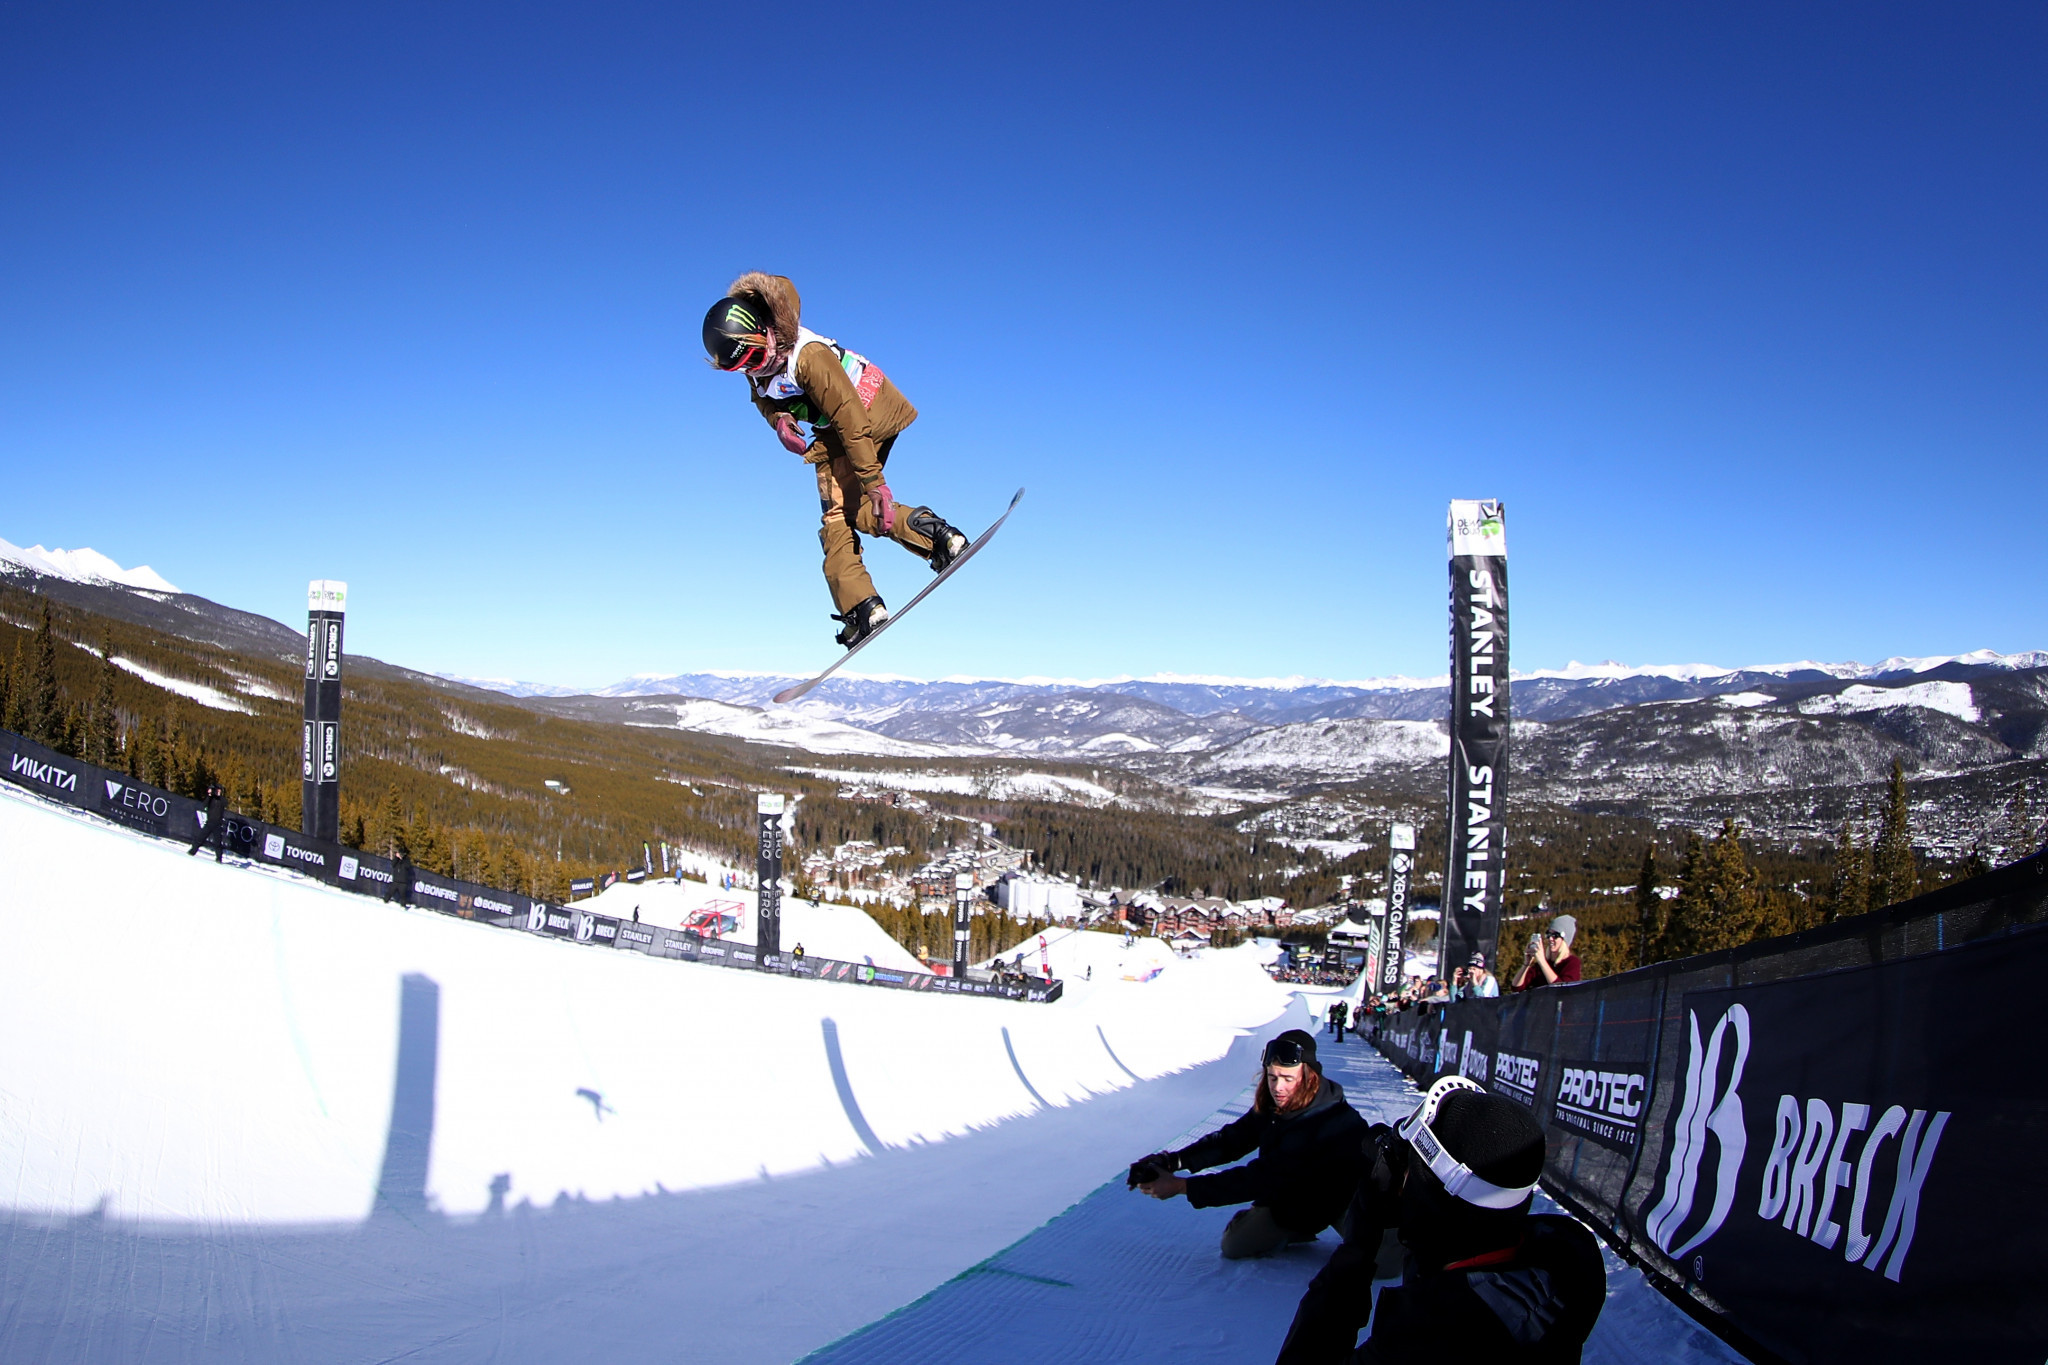 Kim and James impress in halfpipe qualifying at FIS Snowboard World Cup